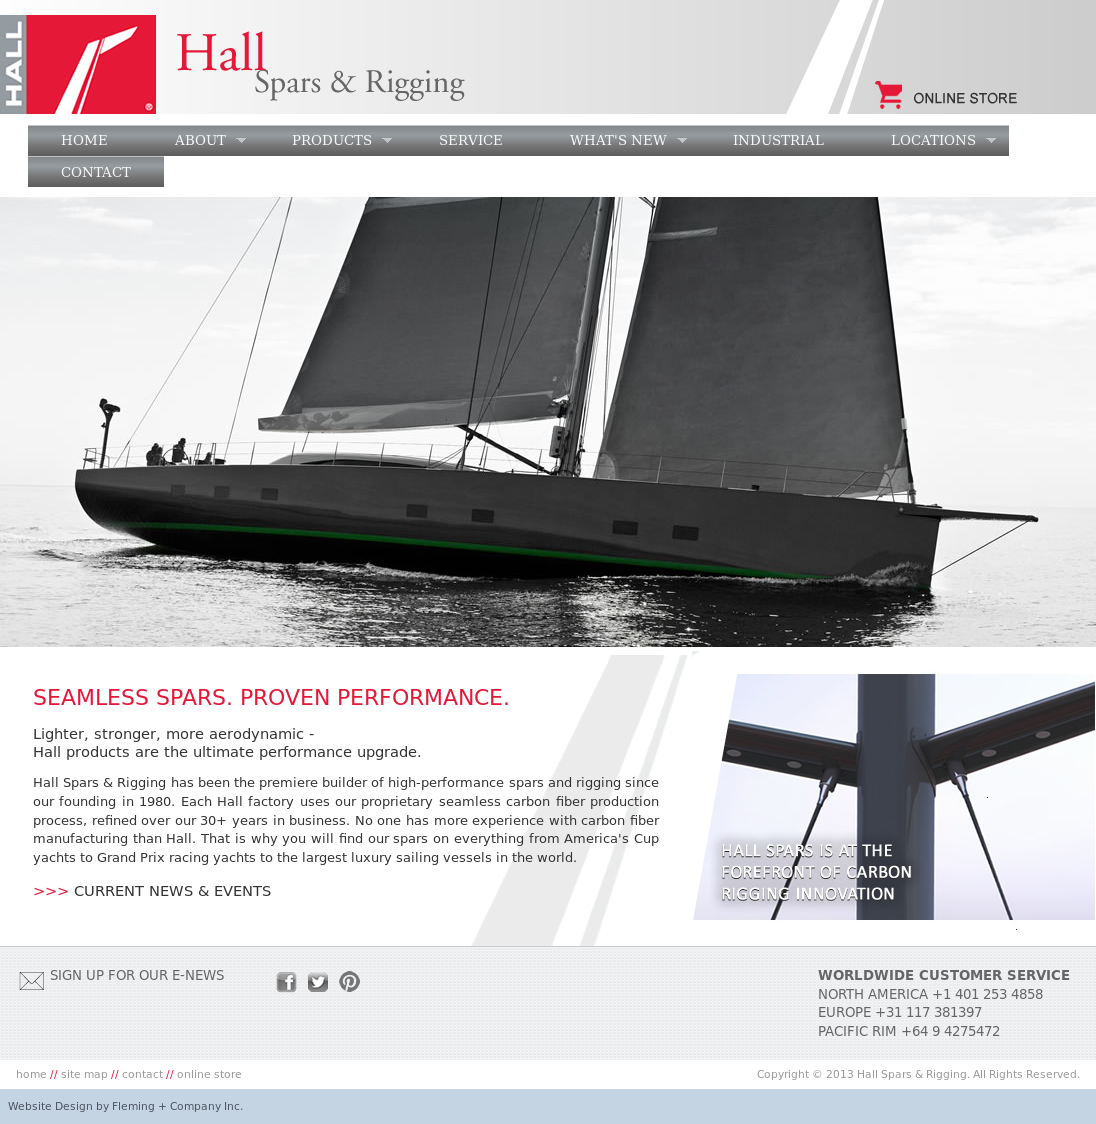 Hall Spars & Rigging Competitors, Revenue and Employees - Owler